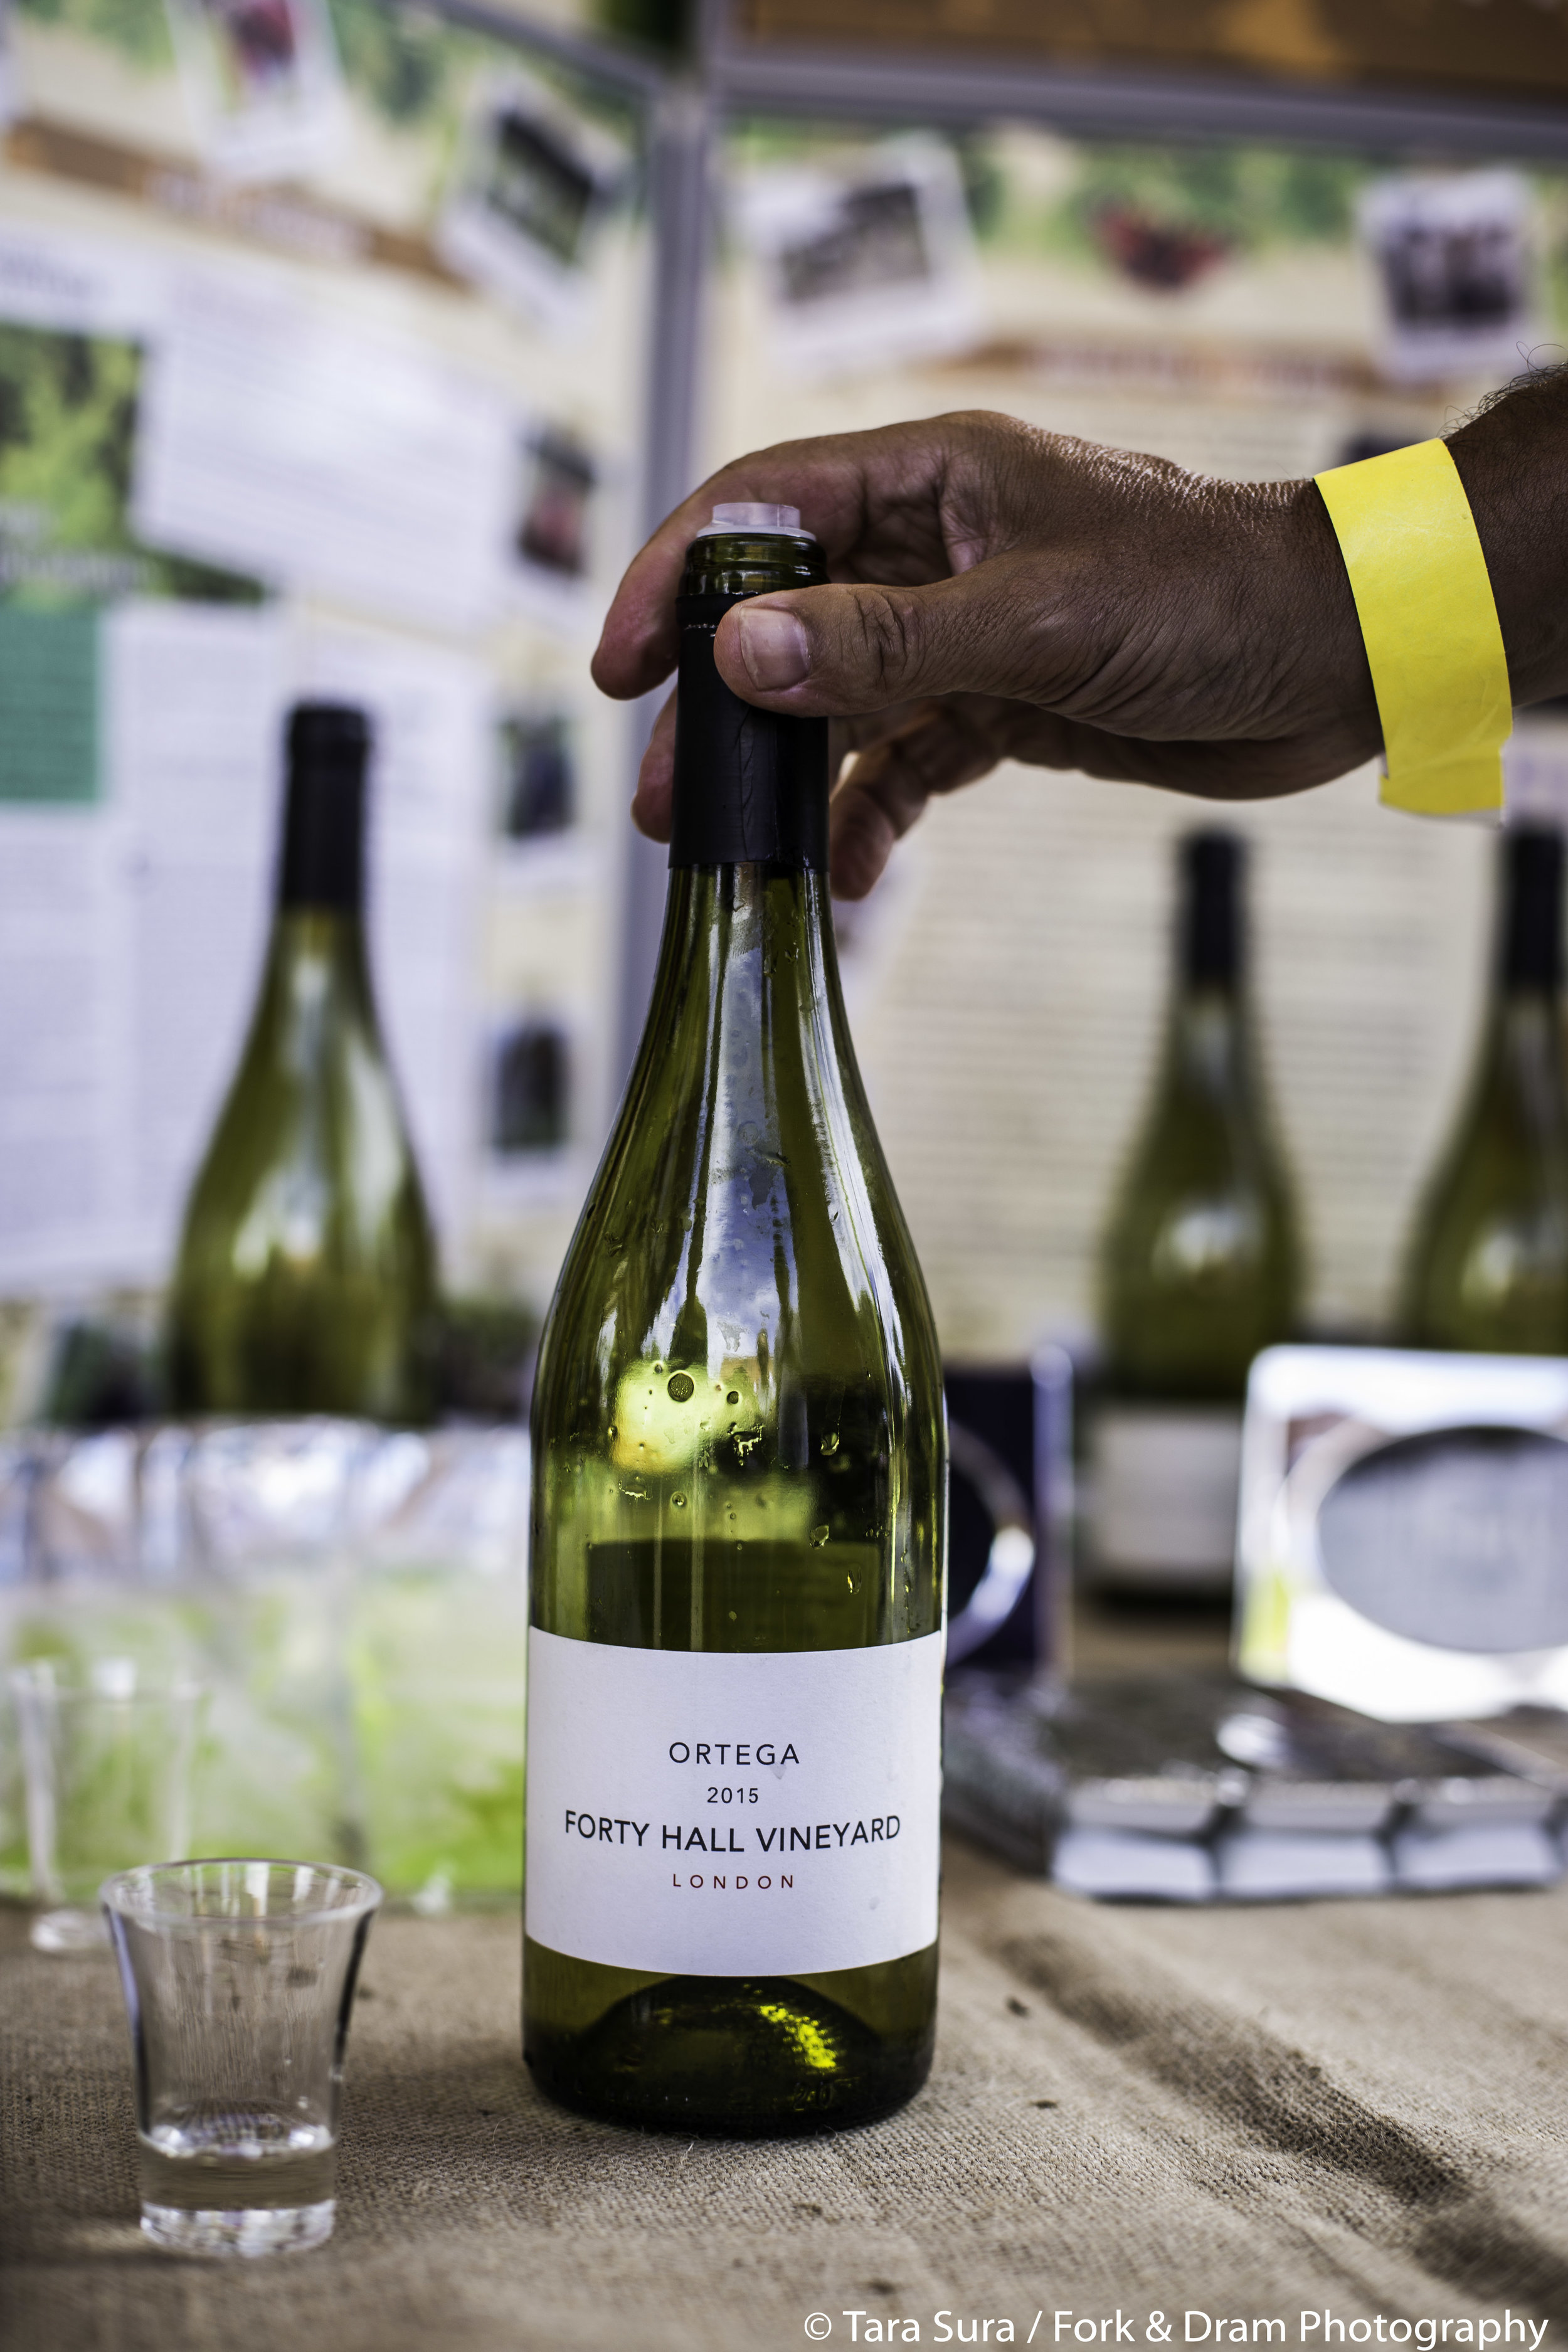 Forty Hall Vineyard  Enjoy a glass of wine from London's only commercial vineyard, based right here on Forty Hall Farm and take home bottles of their acclaimed 2016 2016 Ortega and 2015 Sparkling London Brut   https://www.fortyhallvineyard.com/   Photo:Tara Sura/ Fork and Dram